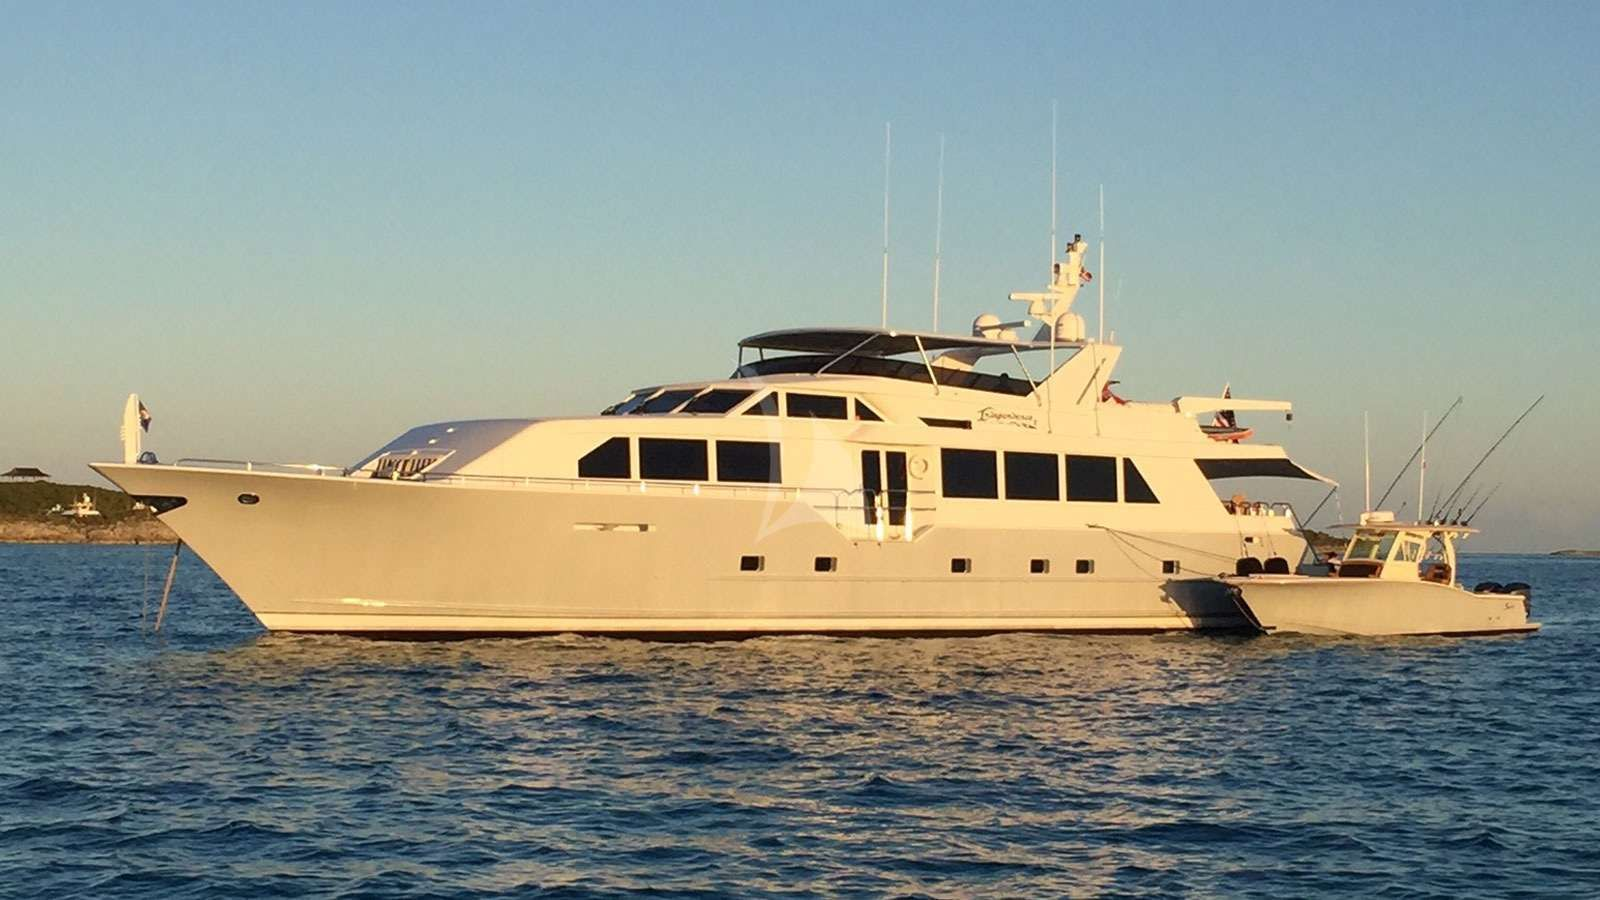 INDEPENDENCE 3 Yacht Charter - Ritzy Charters